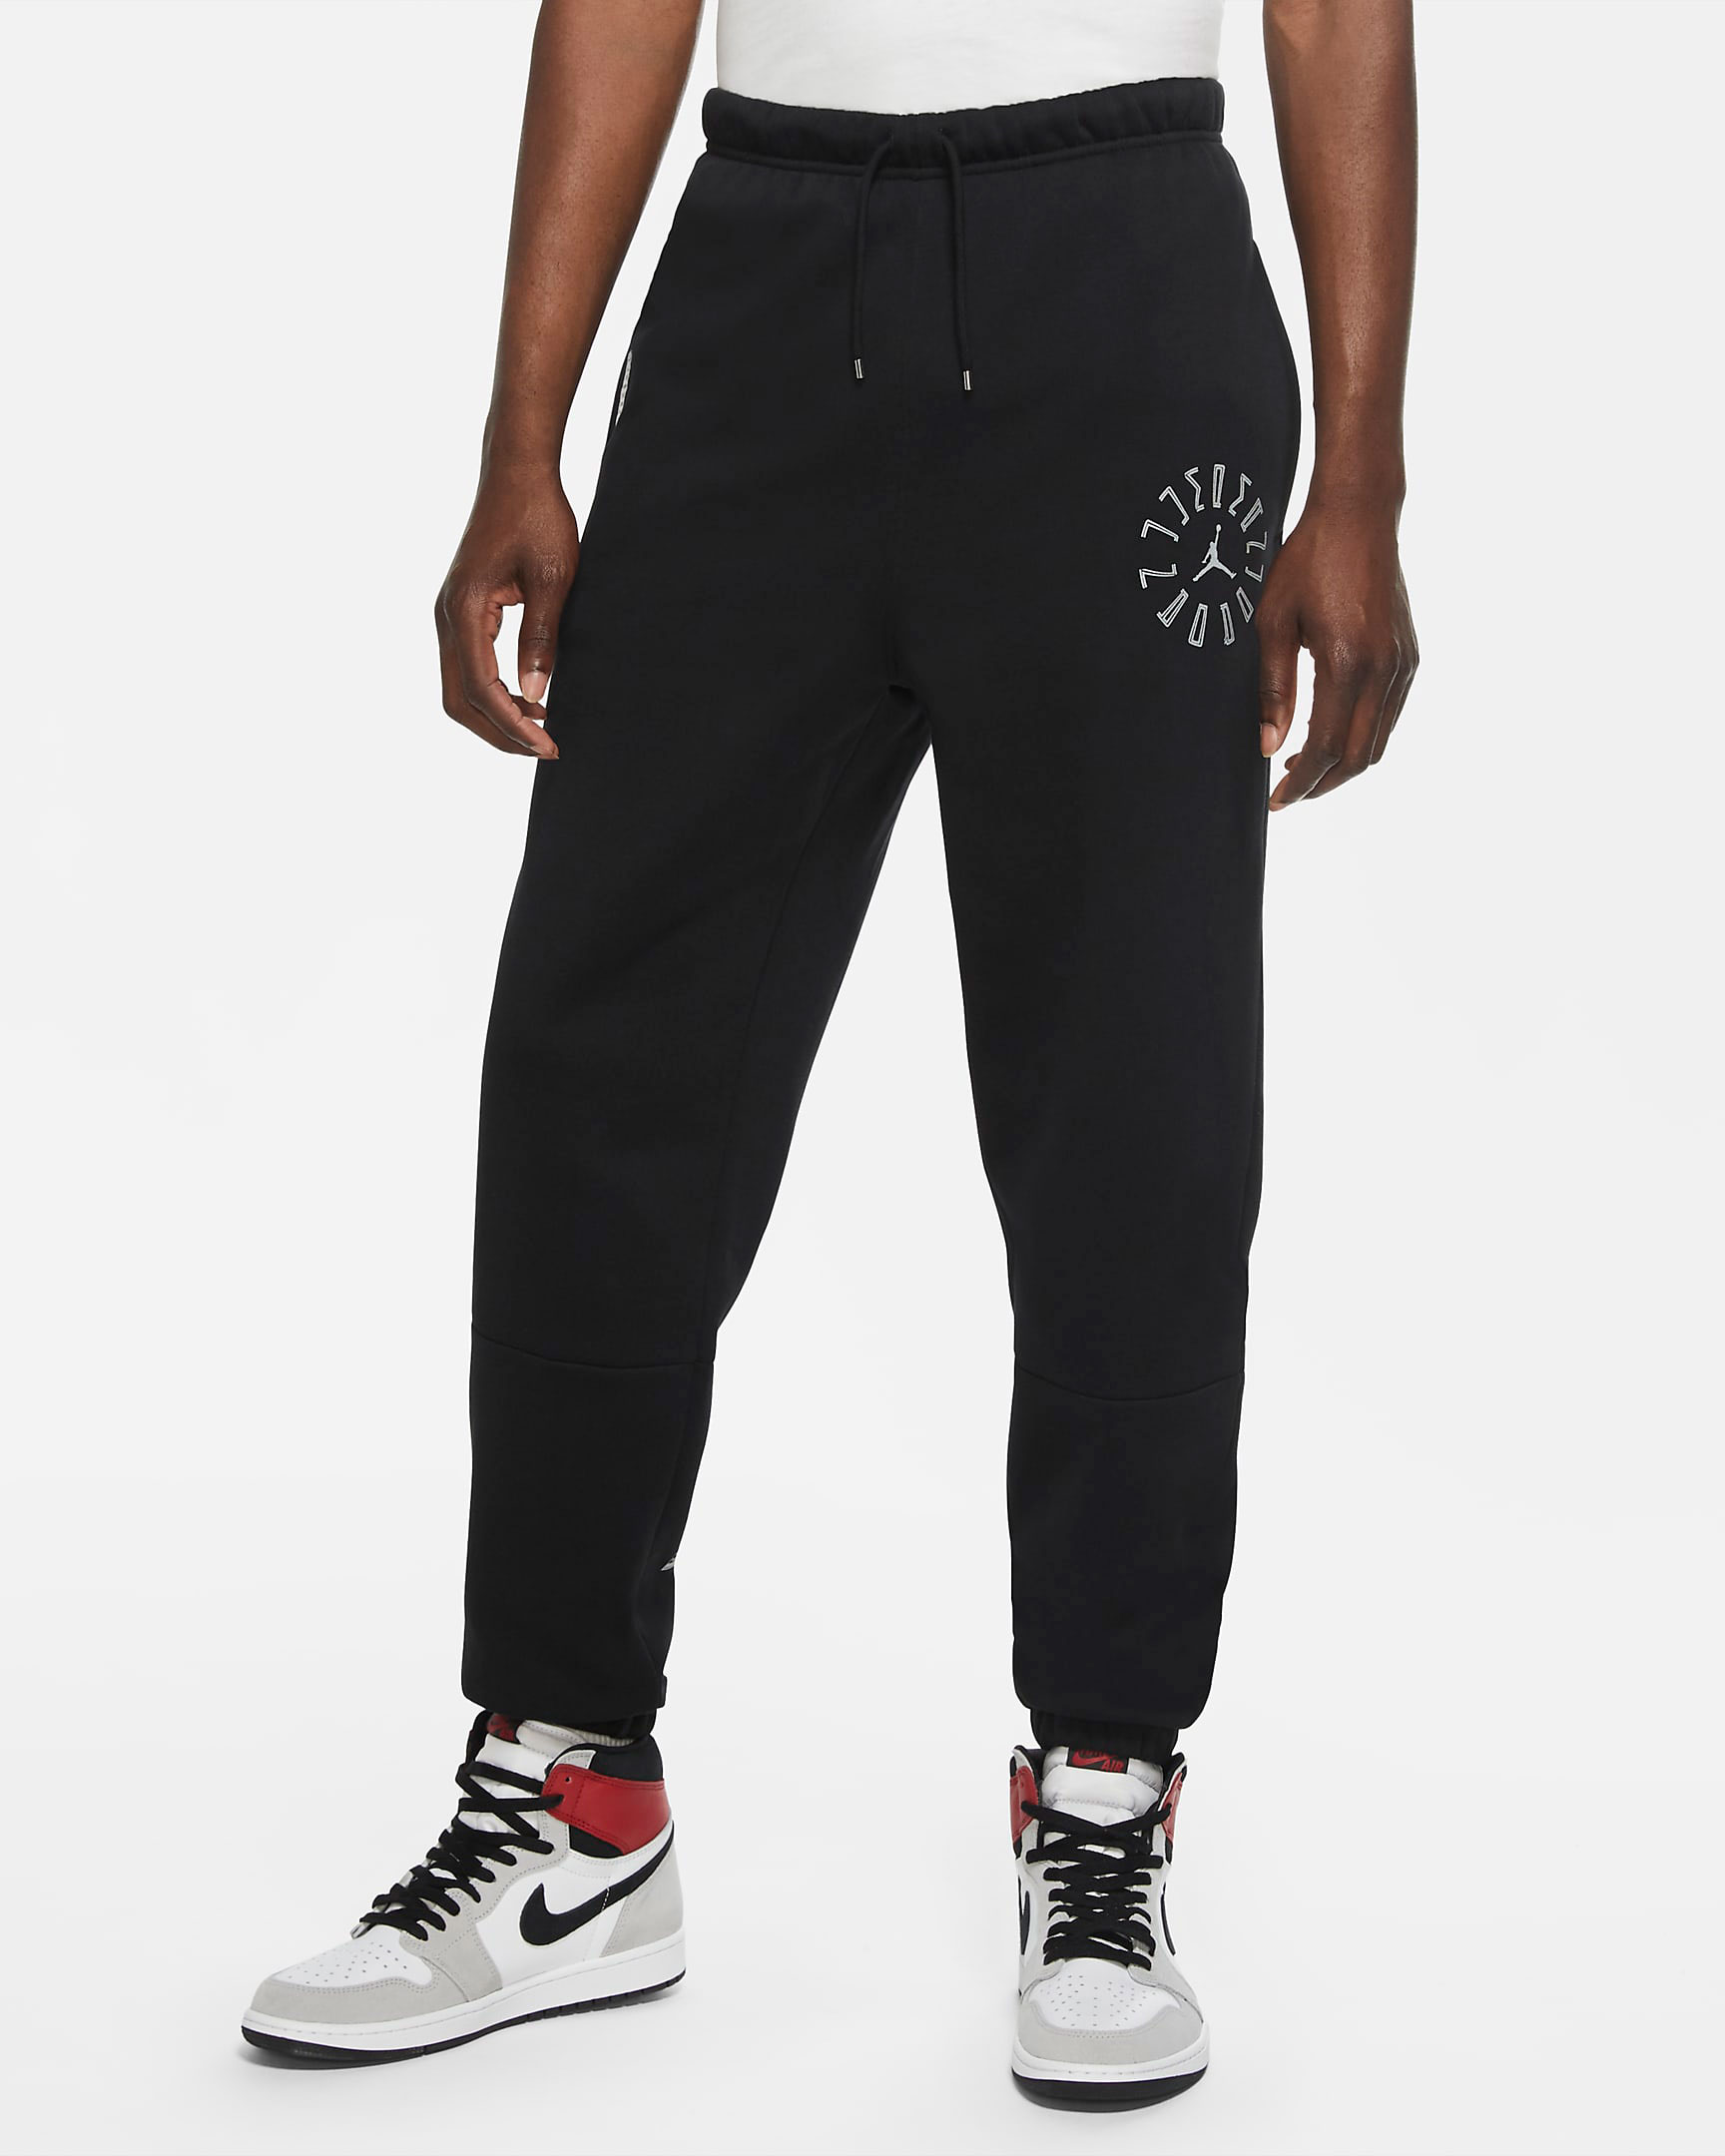 air-jordan-11-jubilee-25th-anniversary-pants-1